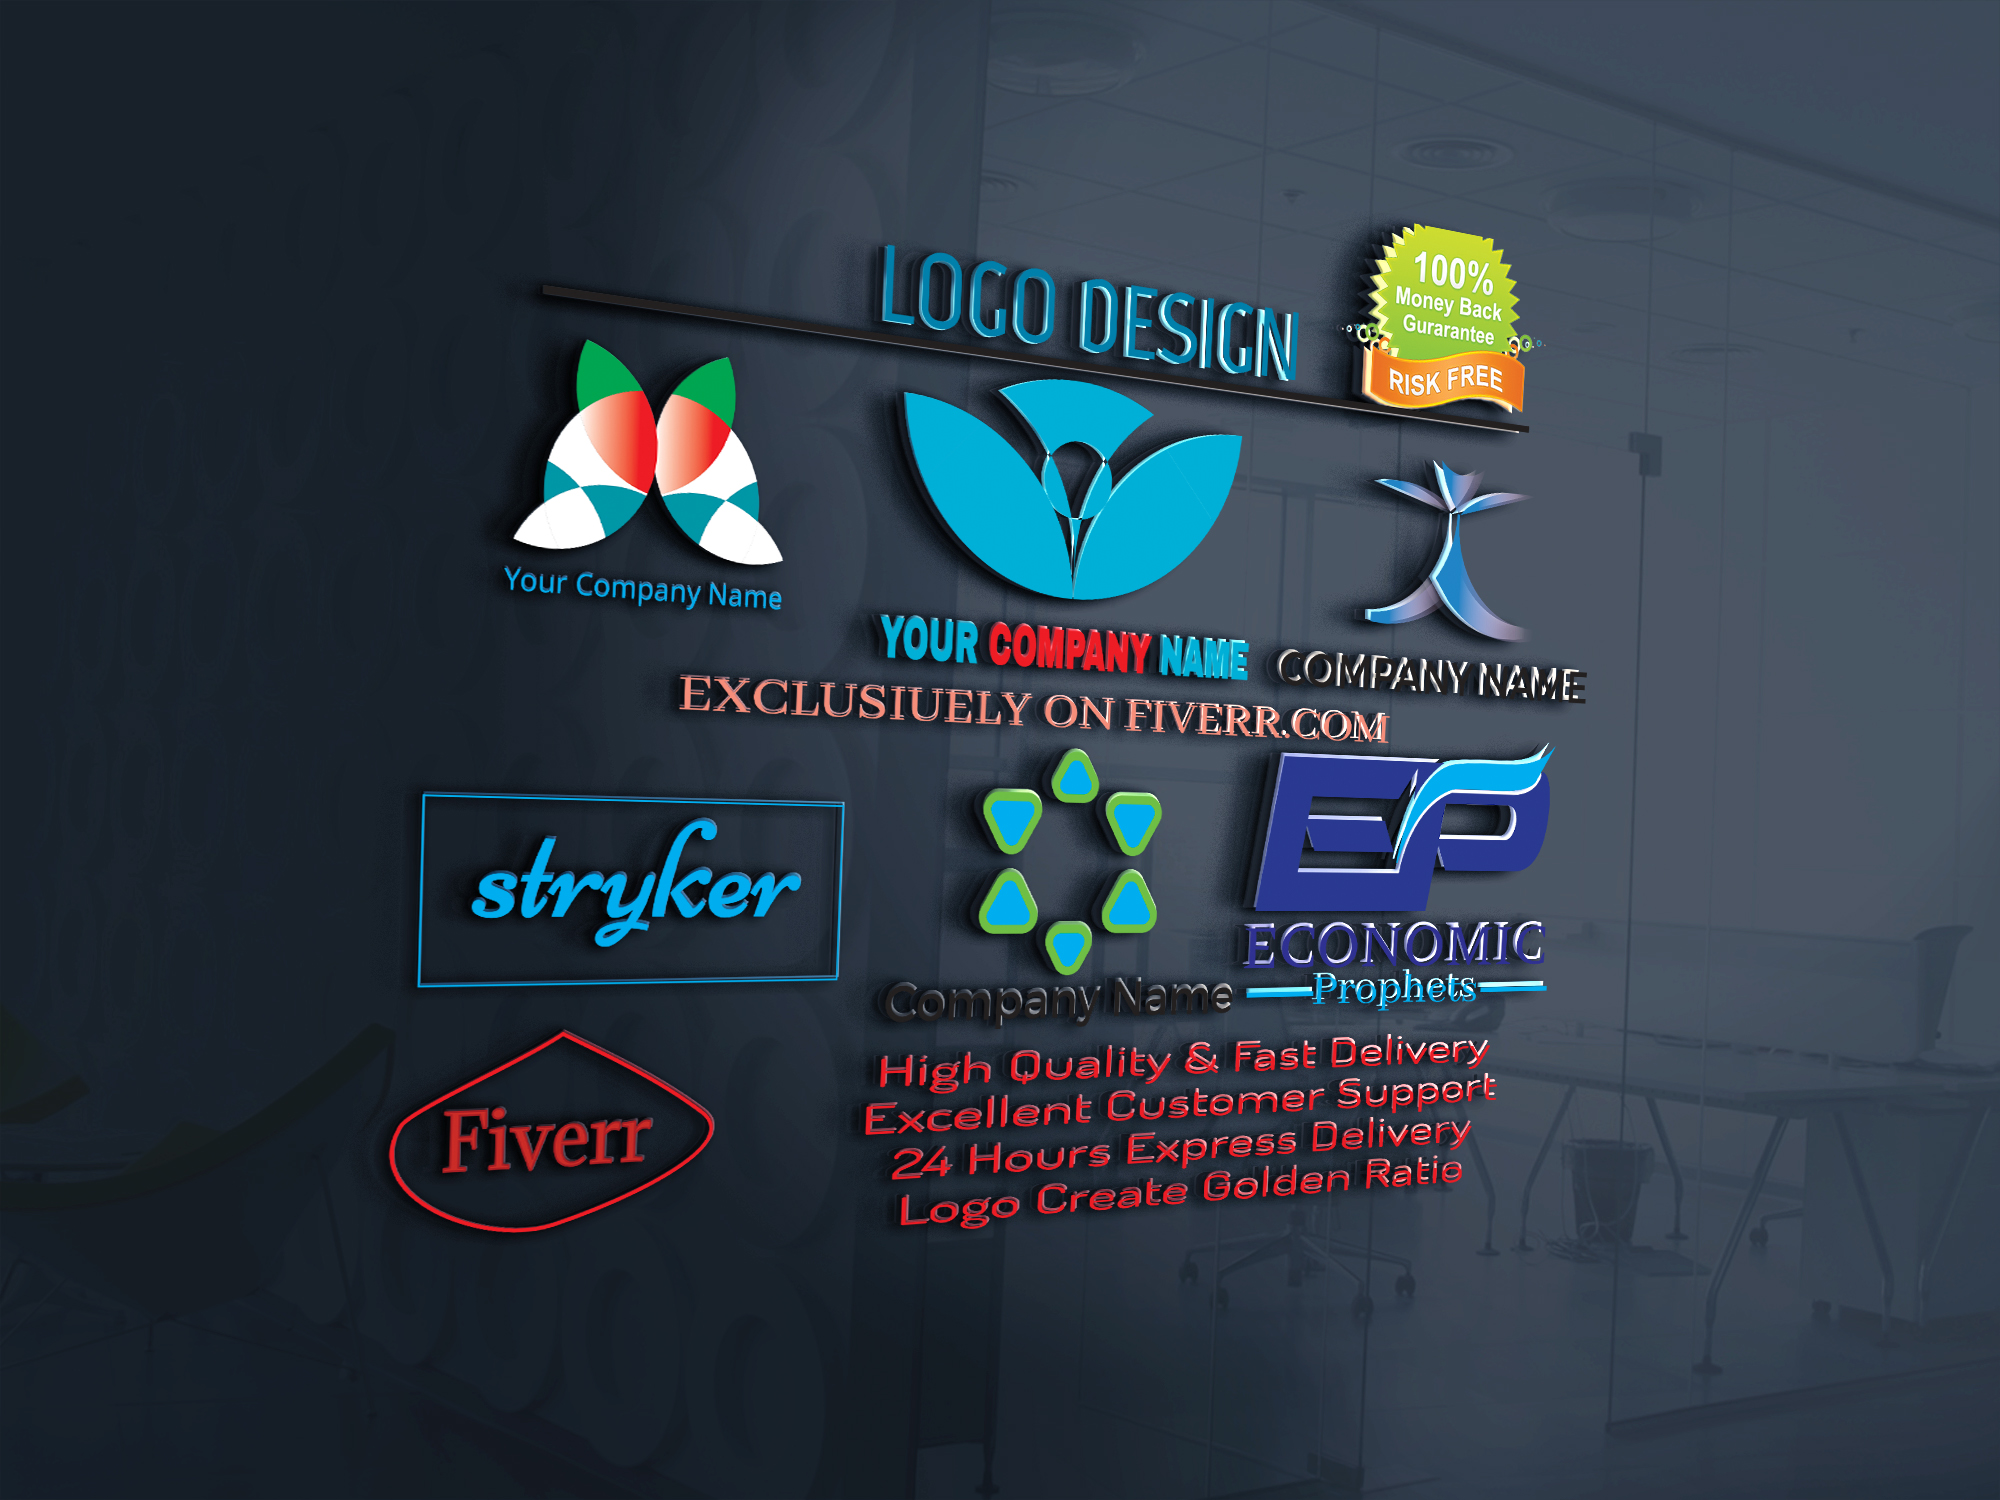 i will create a LOGO for you within 24 hours